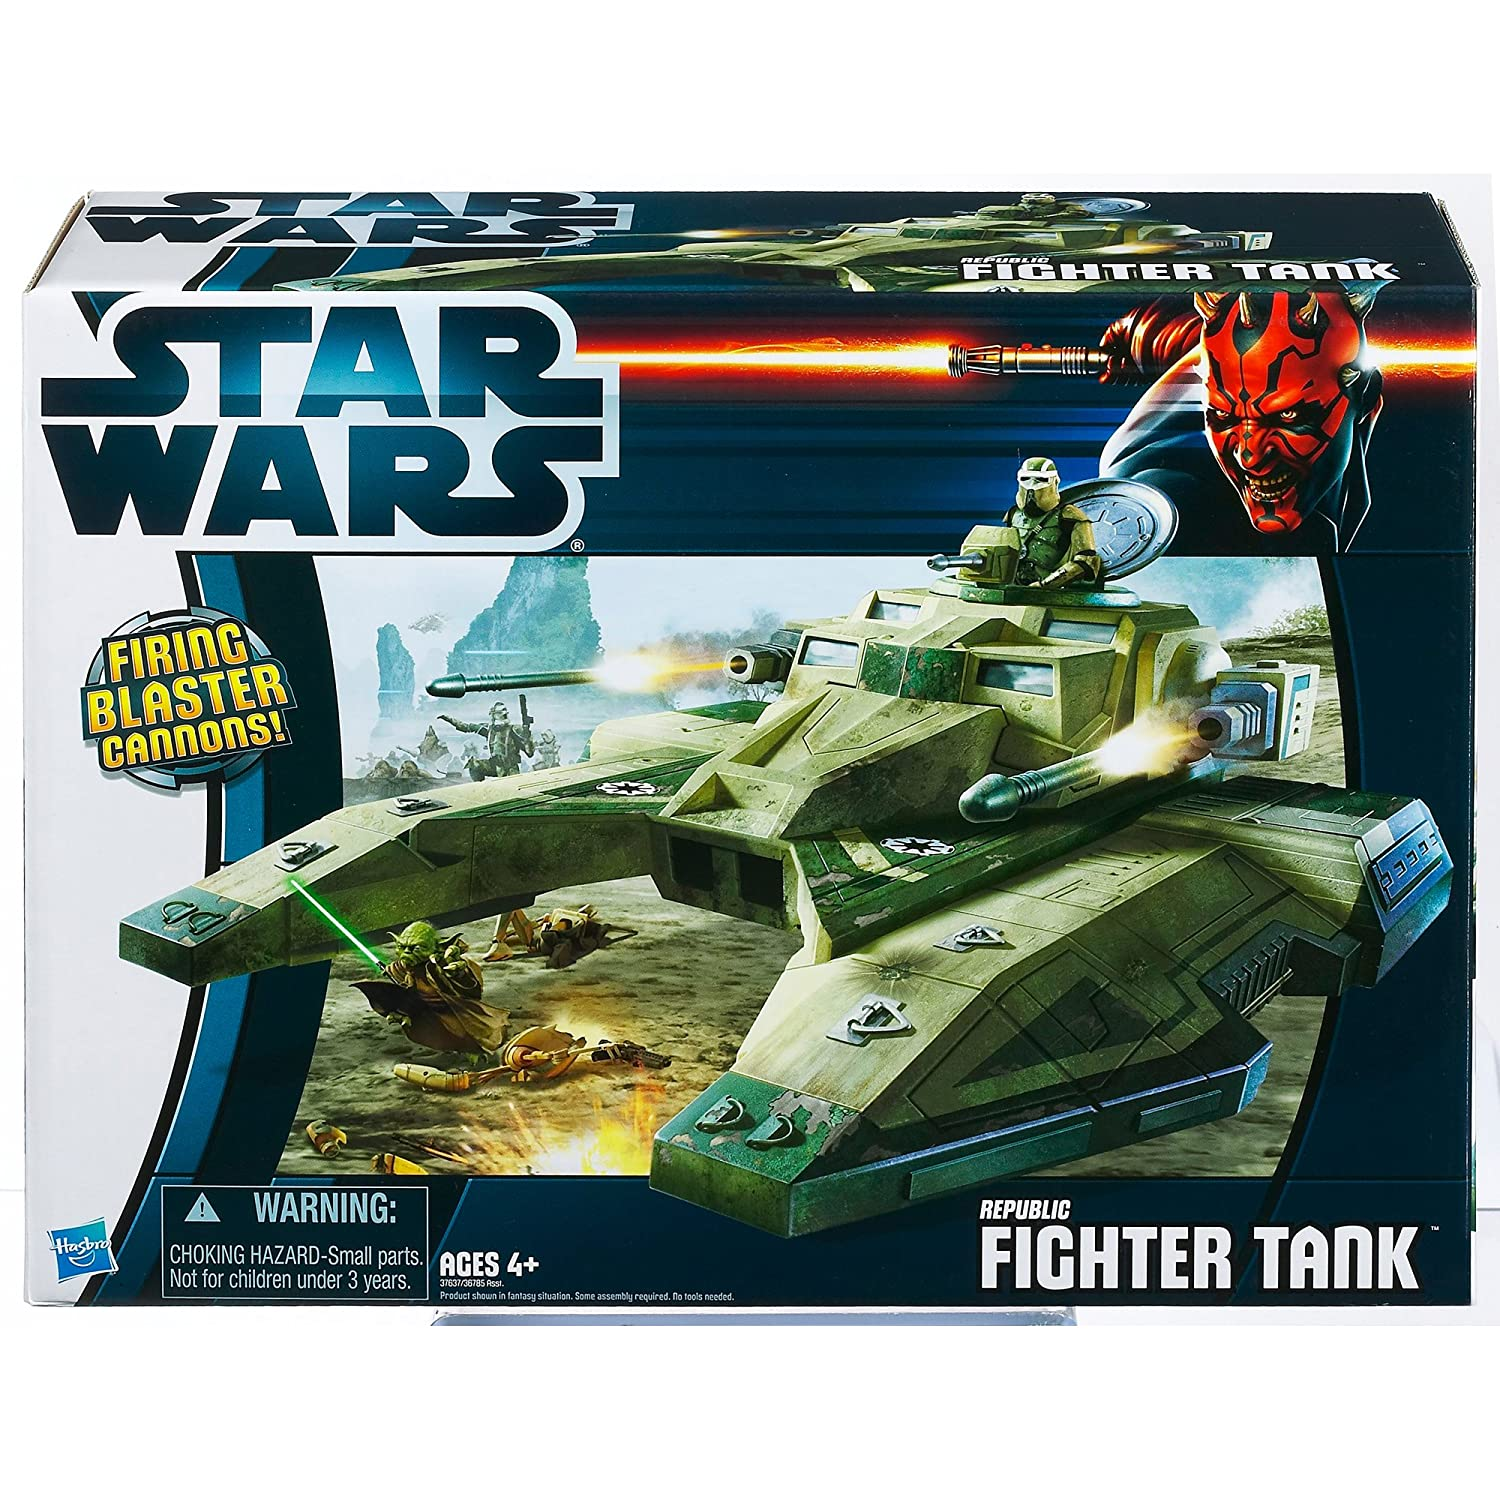 Amazon.com: STAR WARS Class II Attack Vehicles - REPUBLIC FIGHTER TANK: Toys & Games